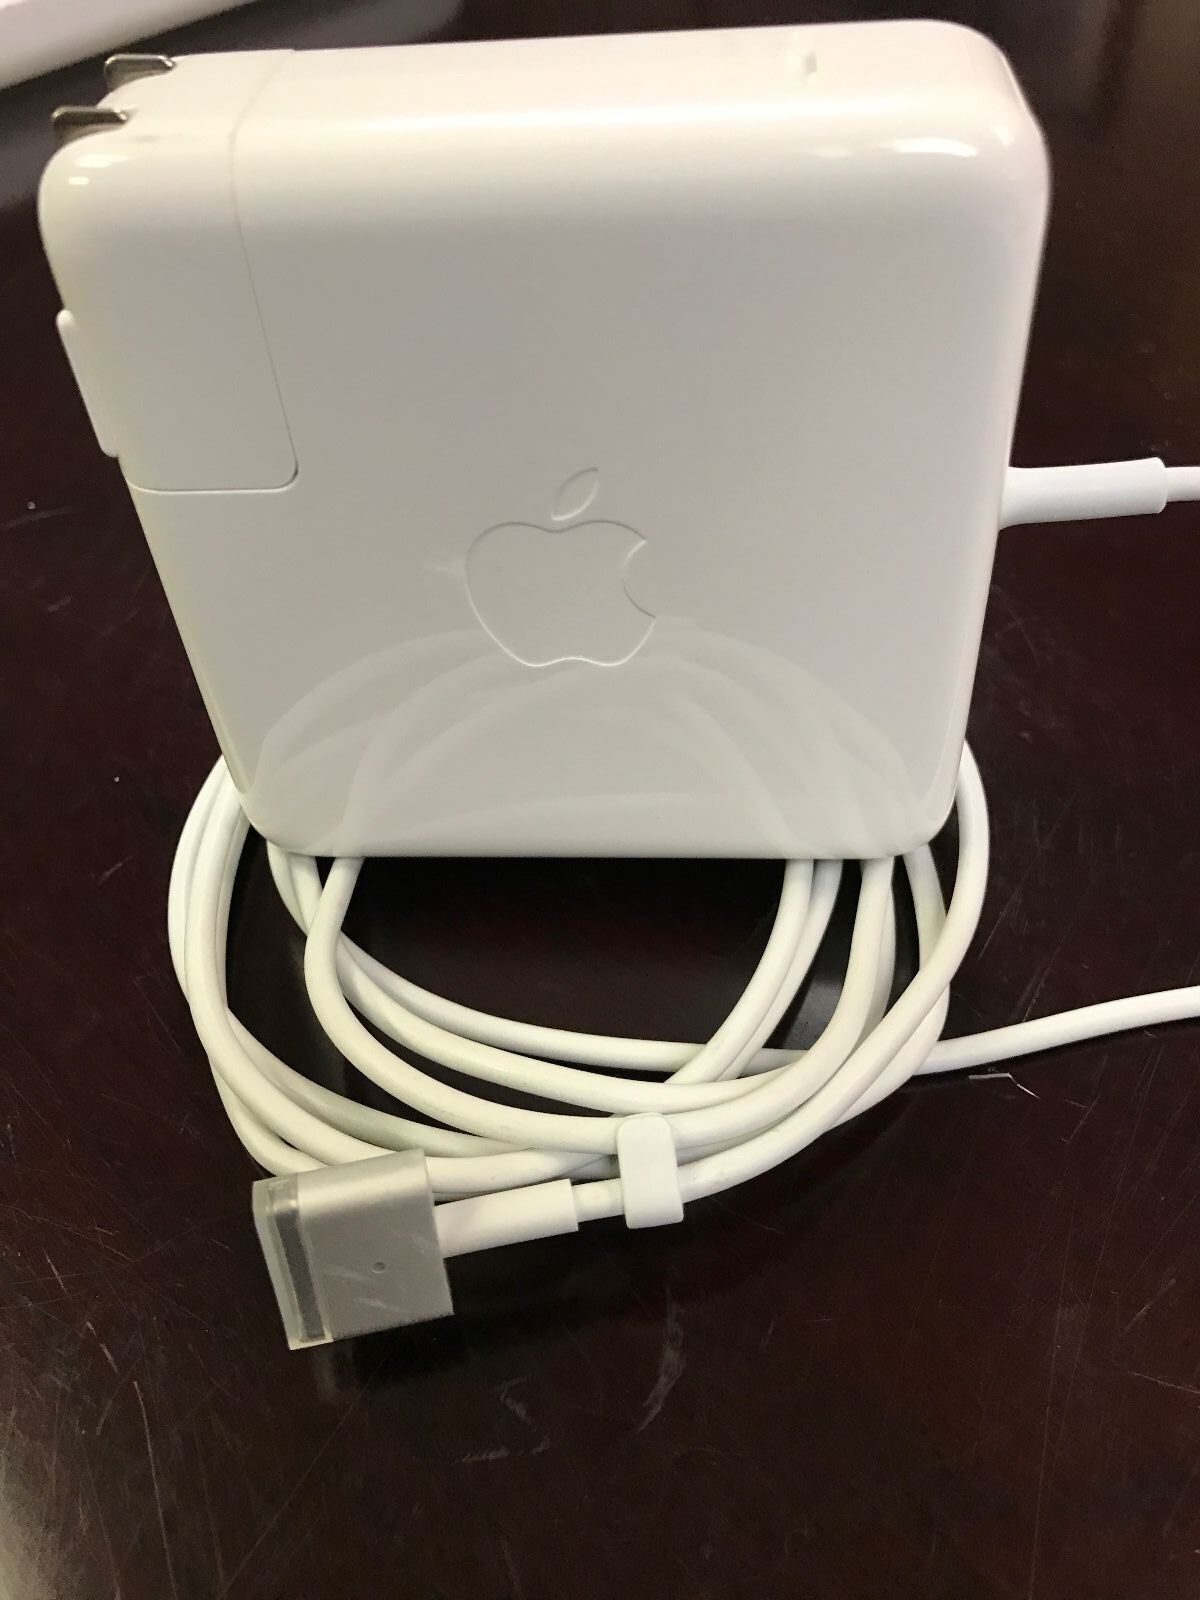 Genuine Apple 85w Magsafe 2 Adapter For Macbook Pro With Retina A1343 Charger 15 Original 1 Of 4only 0 Available A1424